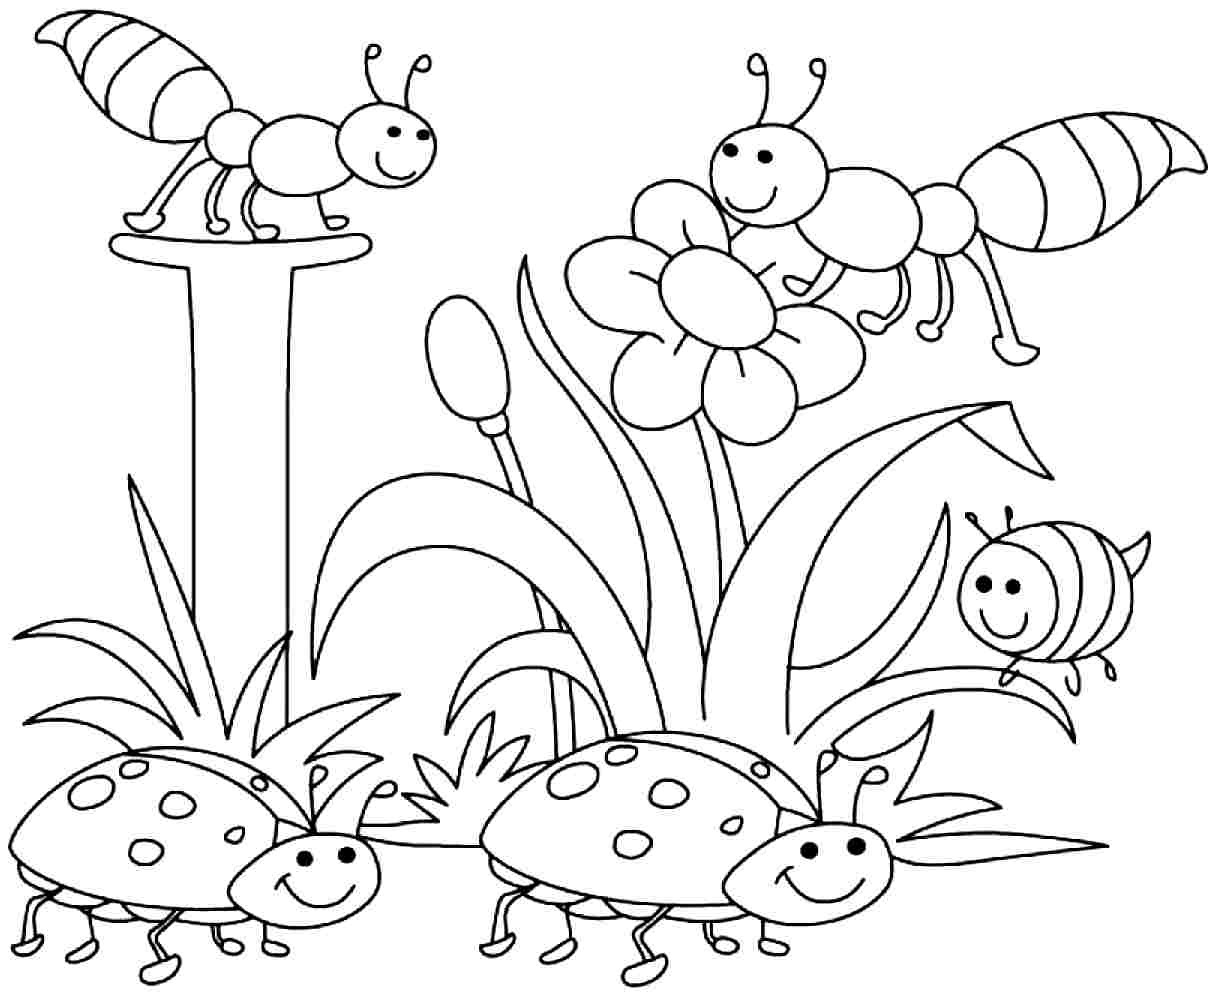 Coloring Pages : Coloring Pages Pi5Rkjqbt Spring For Kids Fabulous - Spring Coloring Sheets Free Printable